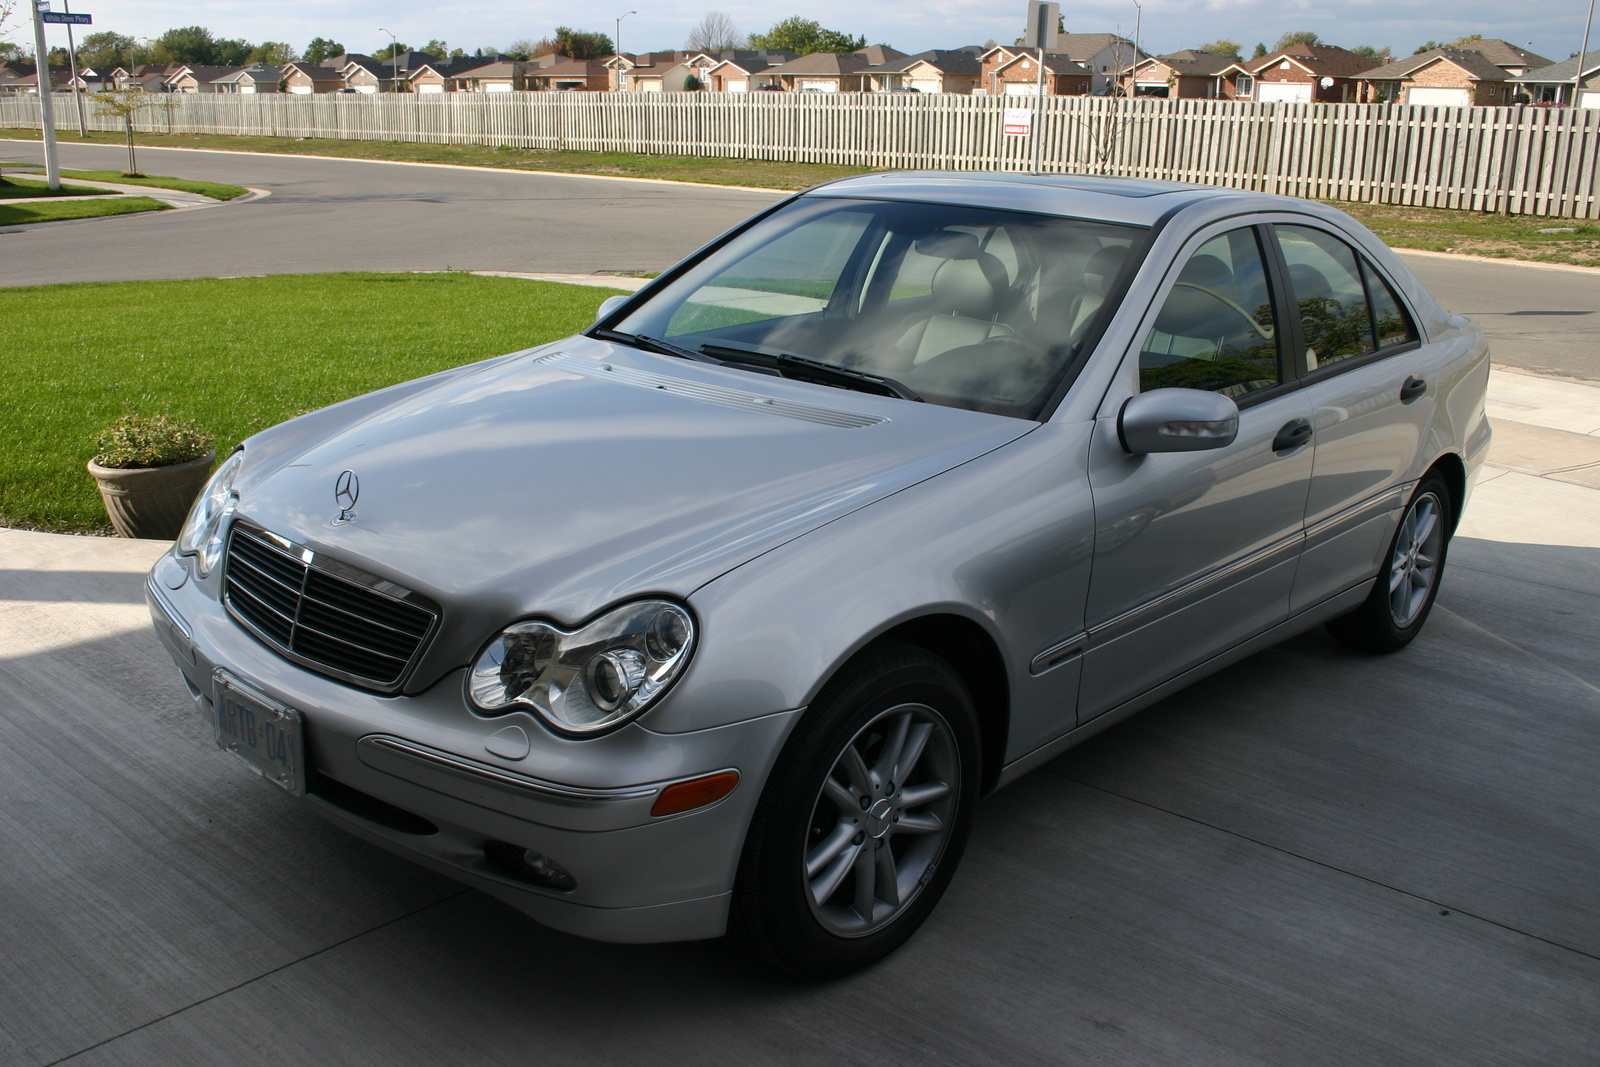 2004 mercedes benz c class other pictures cargurus for 2008 mercedes benz c230